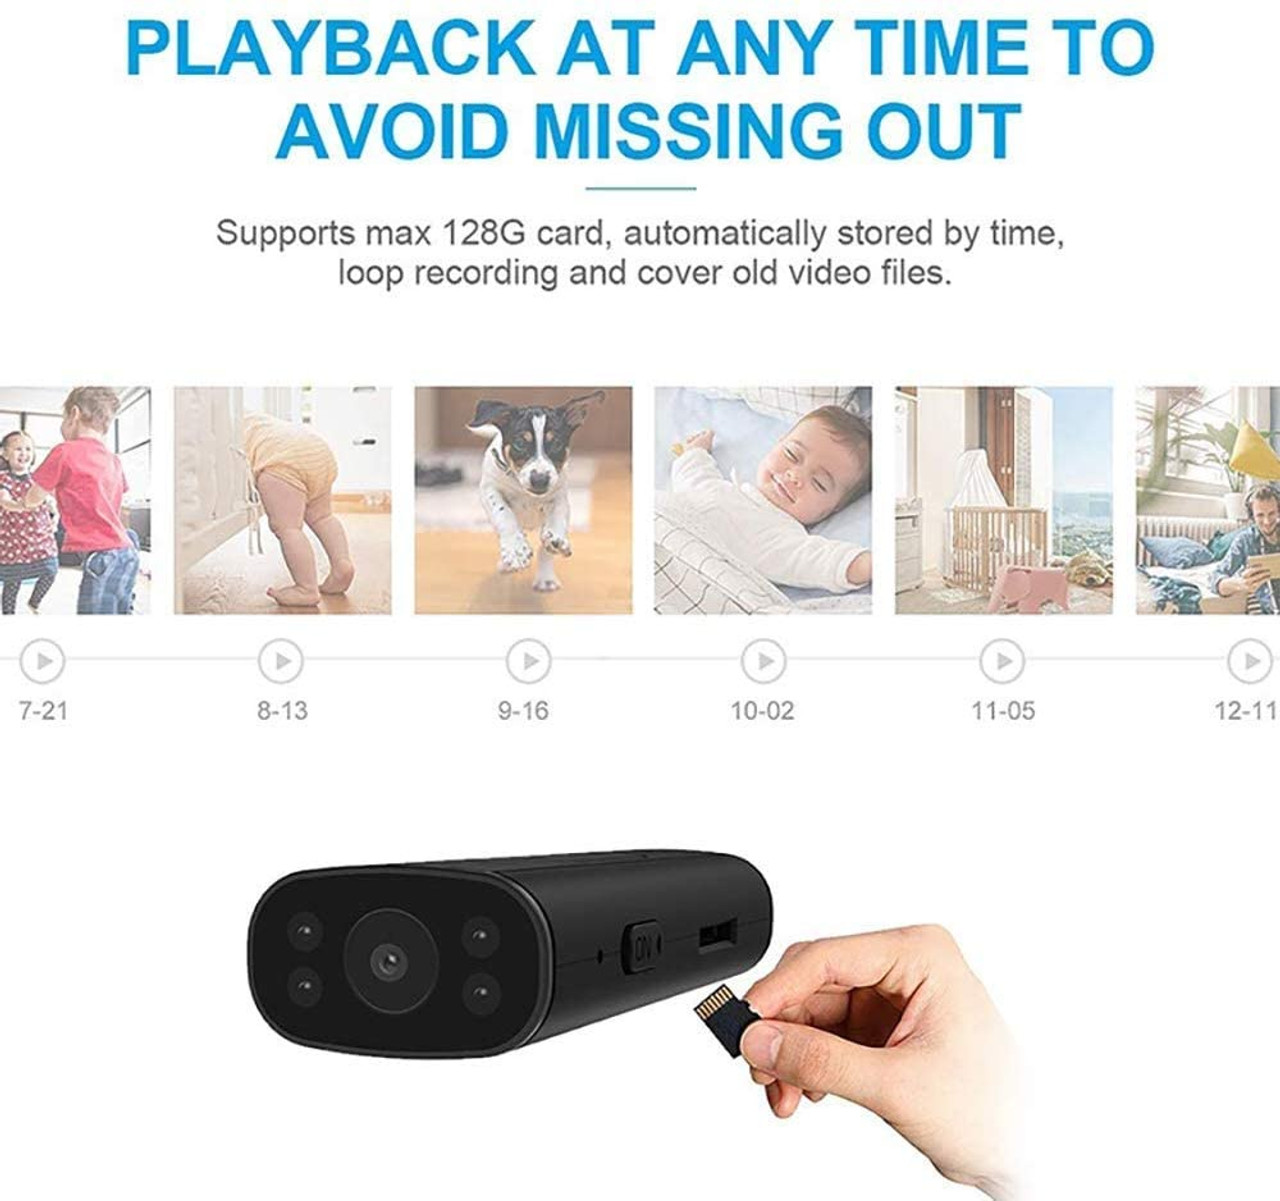 Portable Wireless WiFi Remote View Camera - Home Security Cameras Indoor Outdoor Video Record Smart Motion Detection with night vision